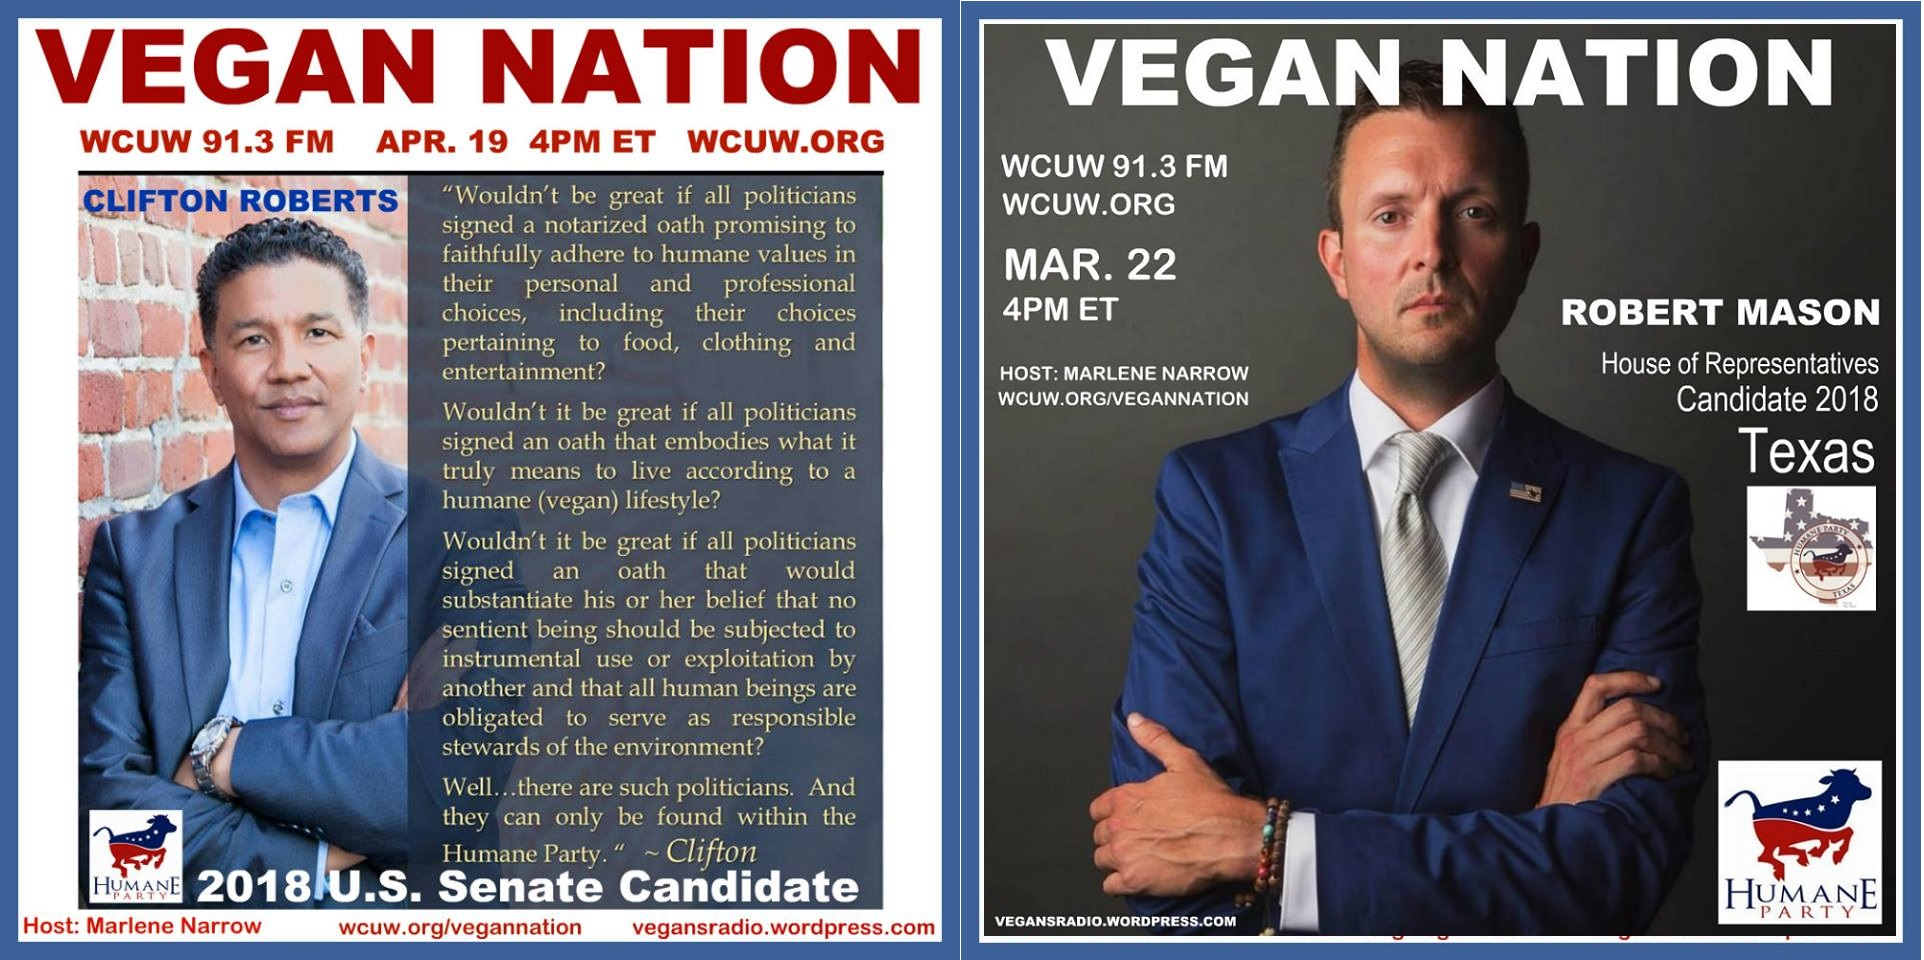 Vegan Nation to Interview Two Humane Party Candidates